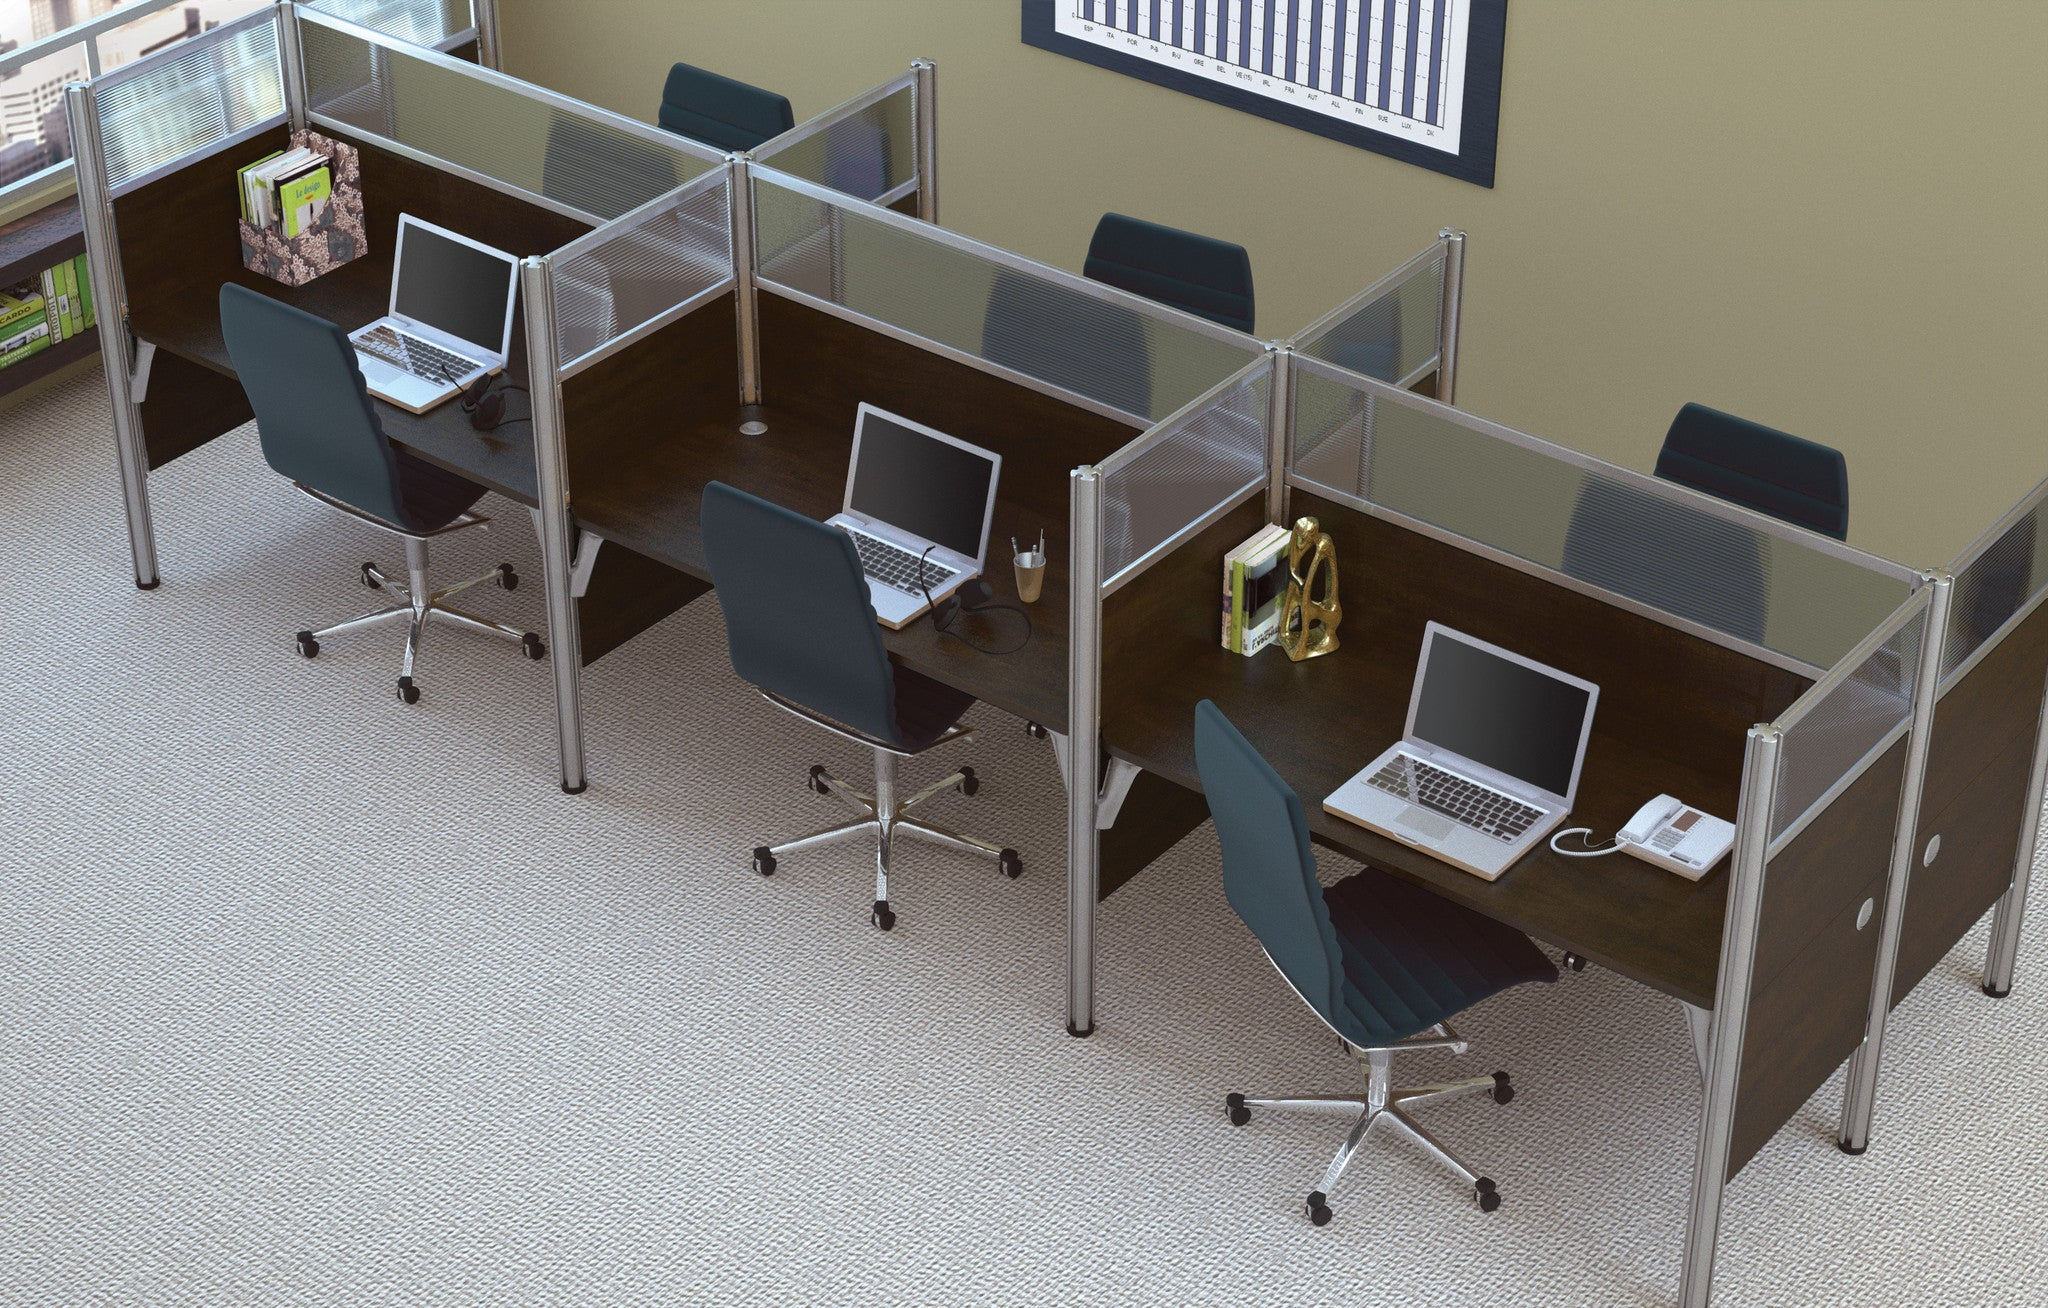 Pro-Biz Premium Six Desk Workstation with Privacy Panel in Chocolate